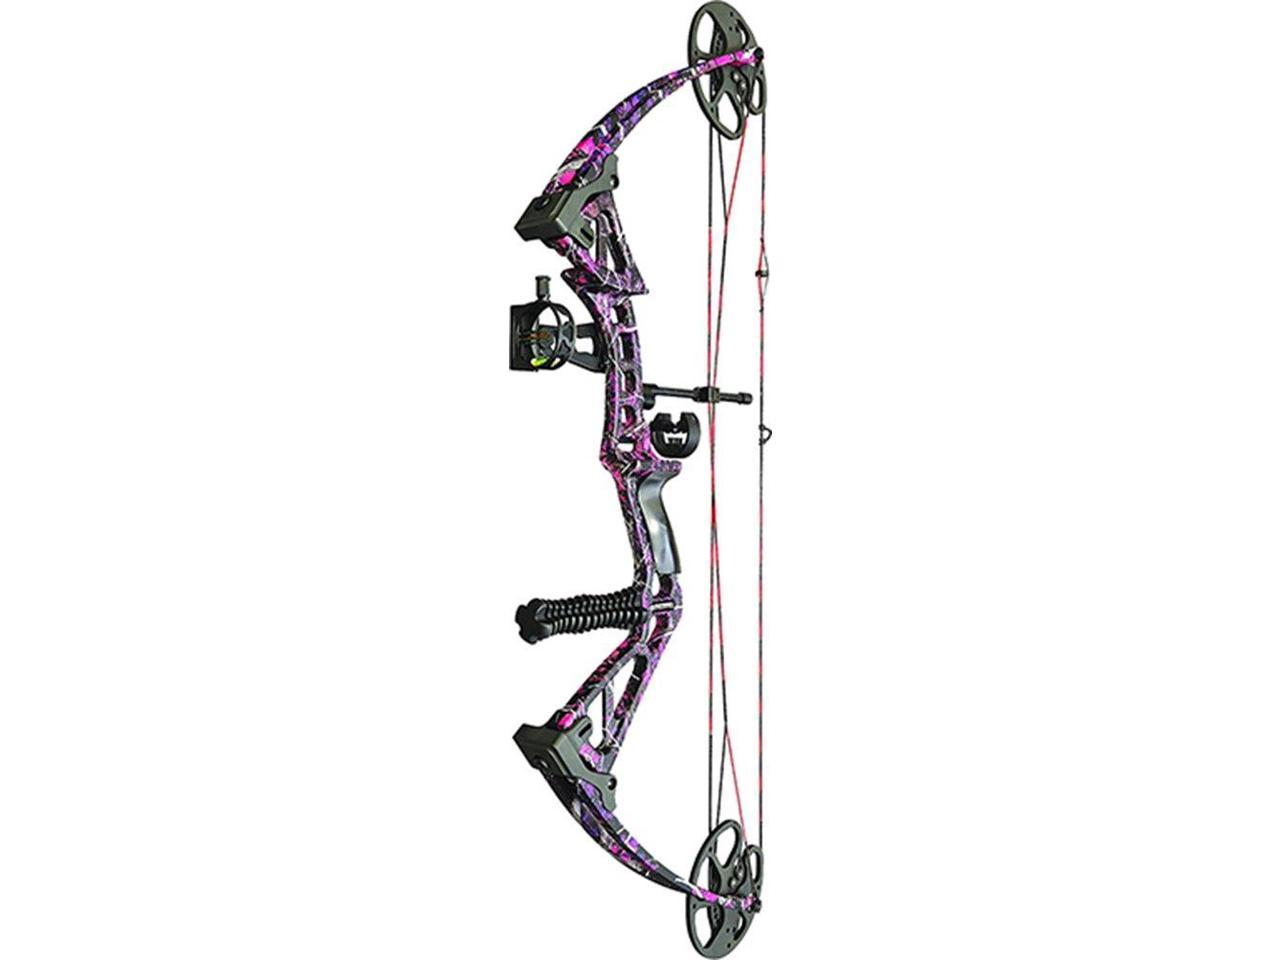 Envoy II Bow Package RH MUDDY GIRL 19-30 20-70# - Click Image to Close